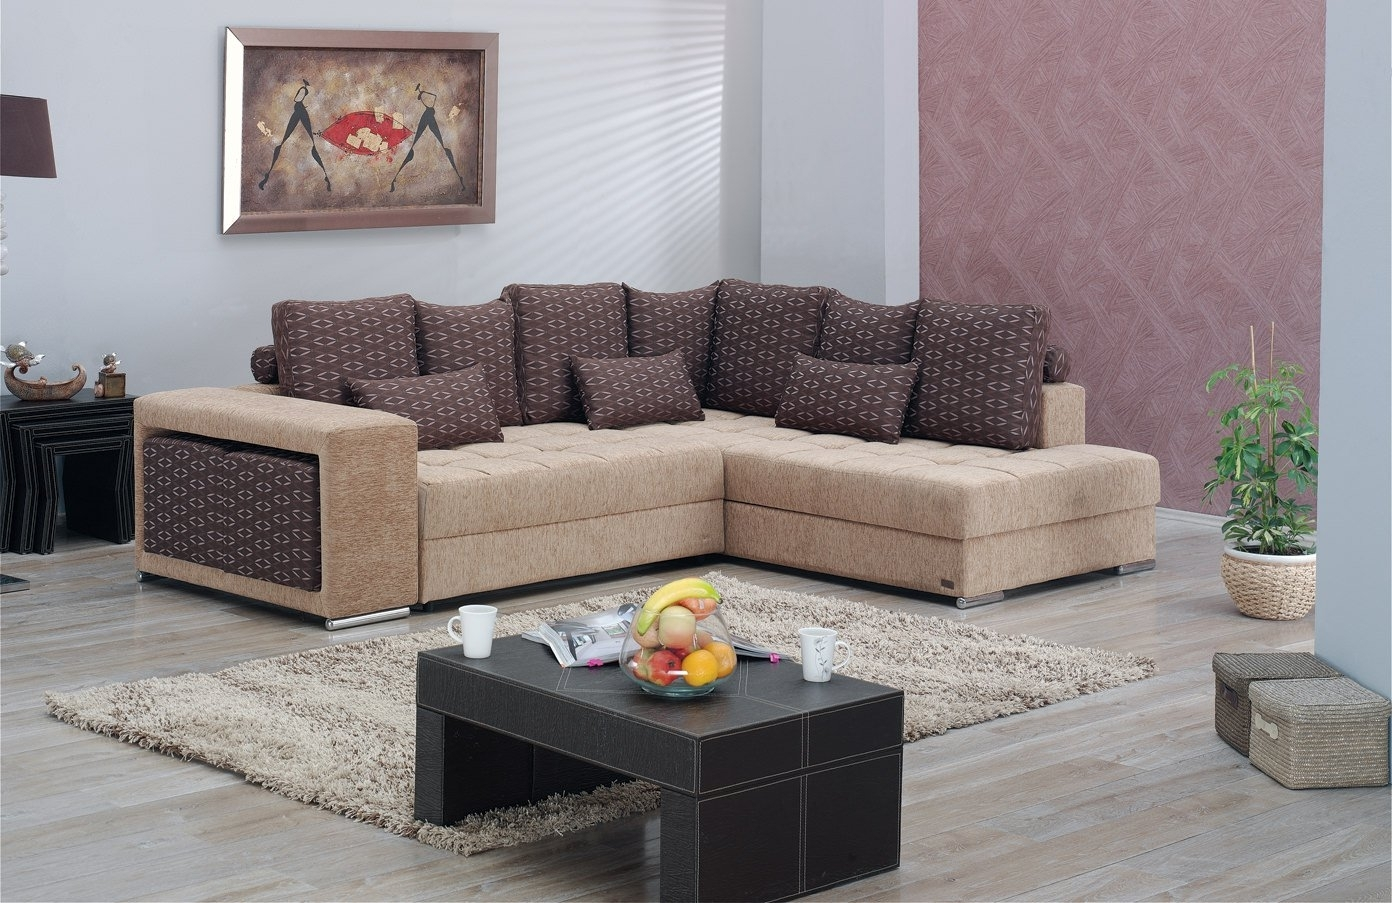 Los Angeles Sectional Sofa Setempire Furniture Usa With Regard To Los Angeles Sectional Sofas (View 3 of 10)